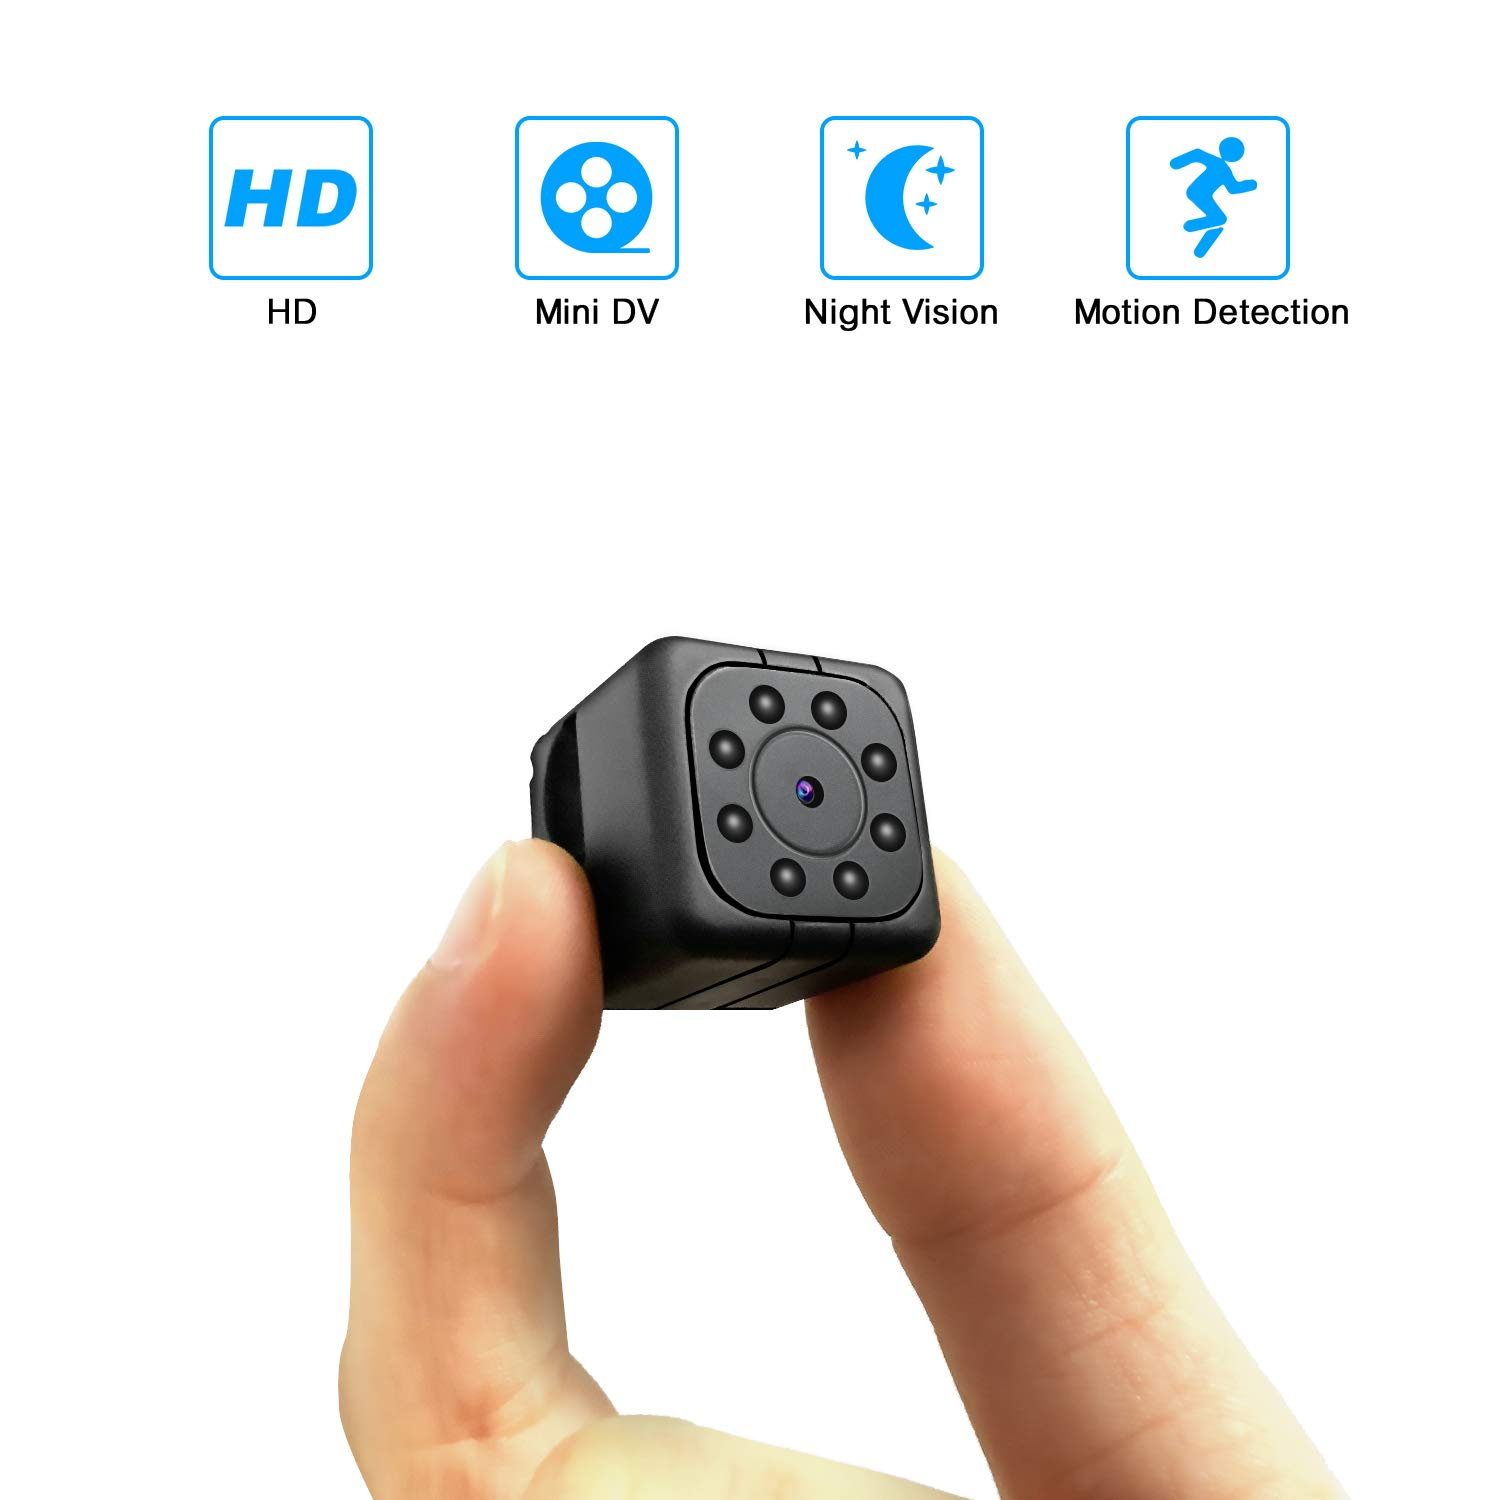 YAOAWE Spy Mini Camera HD 1080P Small Portable Wireless Home Security Surveillance Camera Nanny Cam Night Vision/Motion Detection Hidden Video Recorder Outdoor/Indoor Smallest Spy Cam by YAOAWE